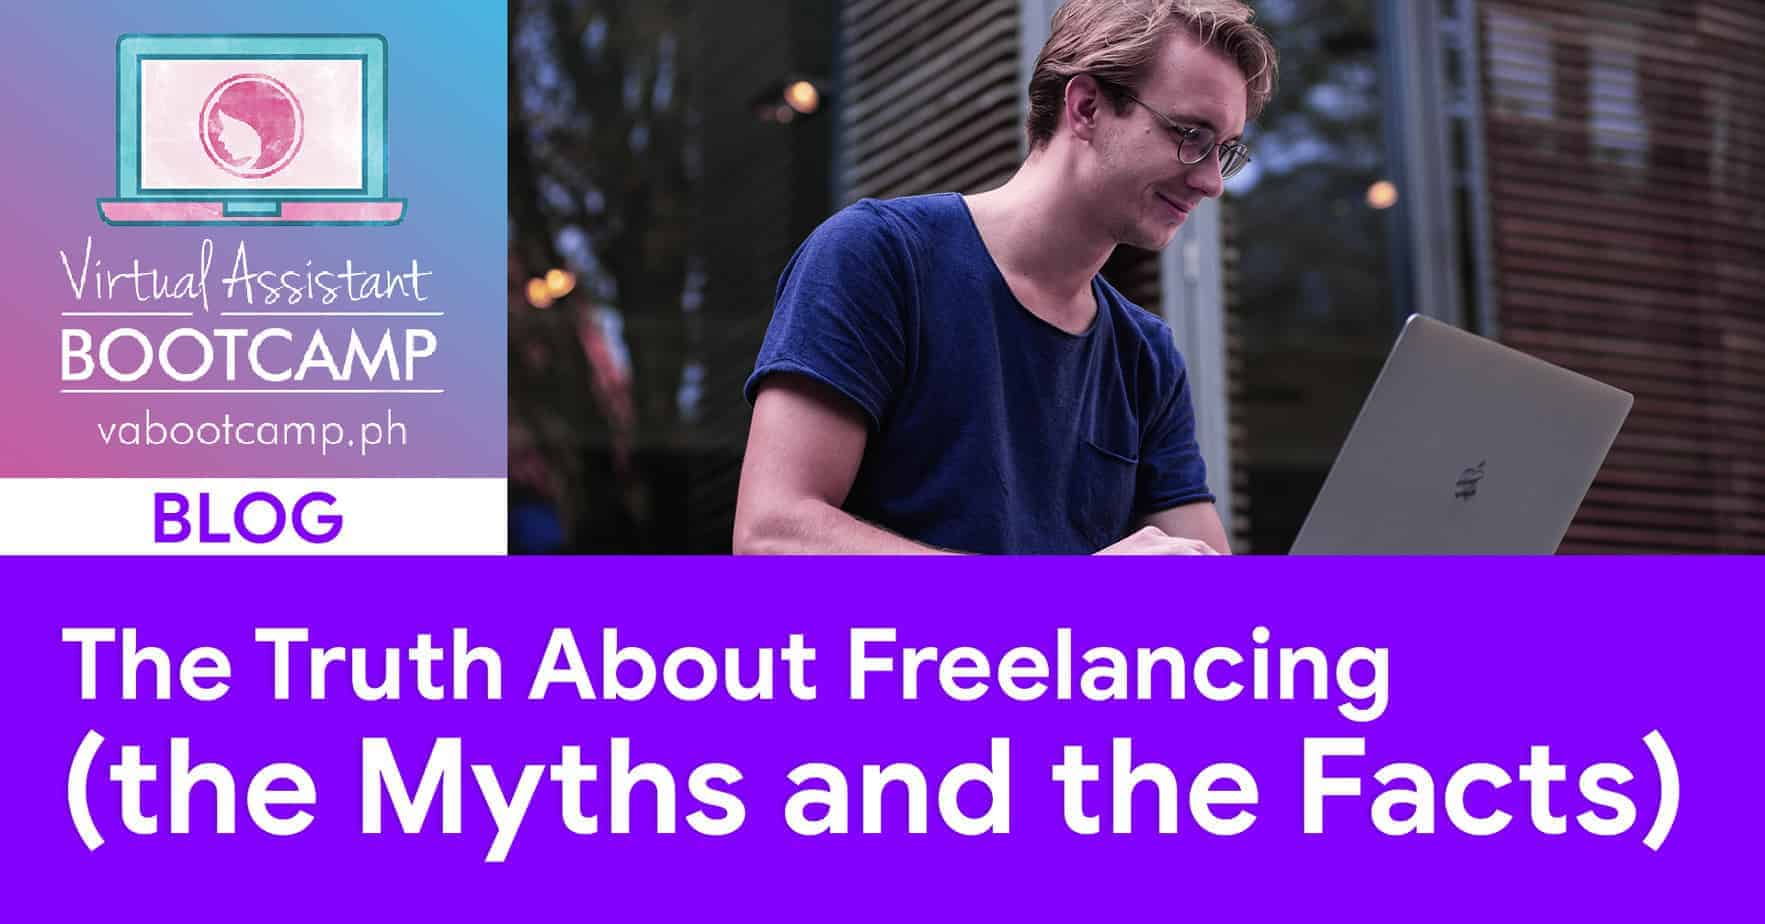 The Truth About Freelancing (the Myths and The Facts)